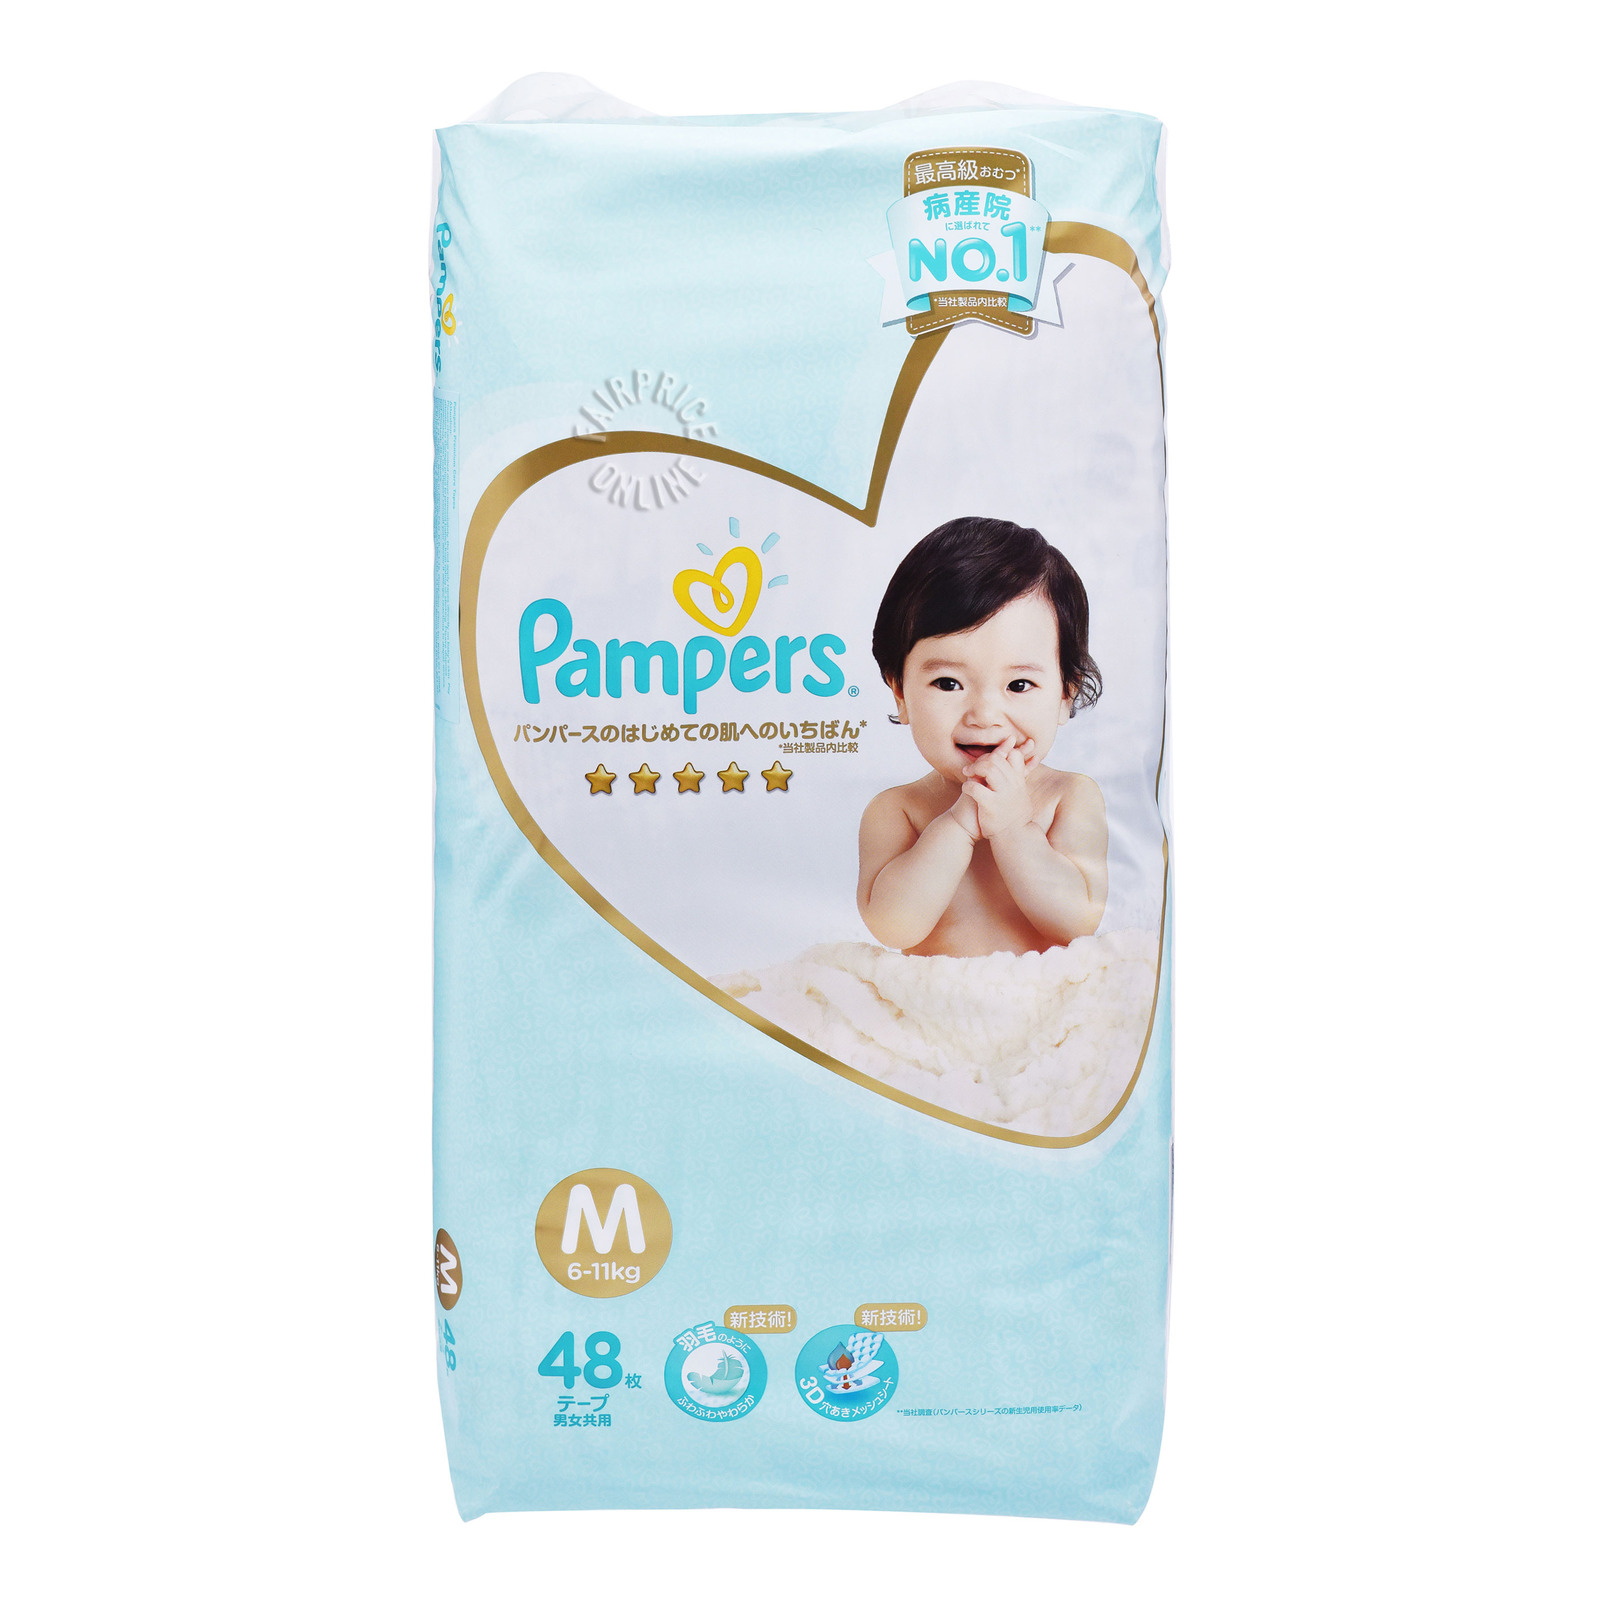 PAMPERS Premium Care Tapes Diapers 48s M 6-11kg